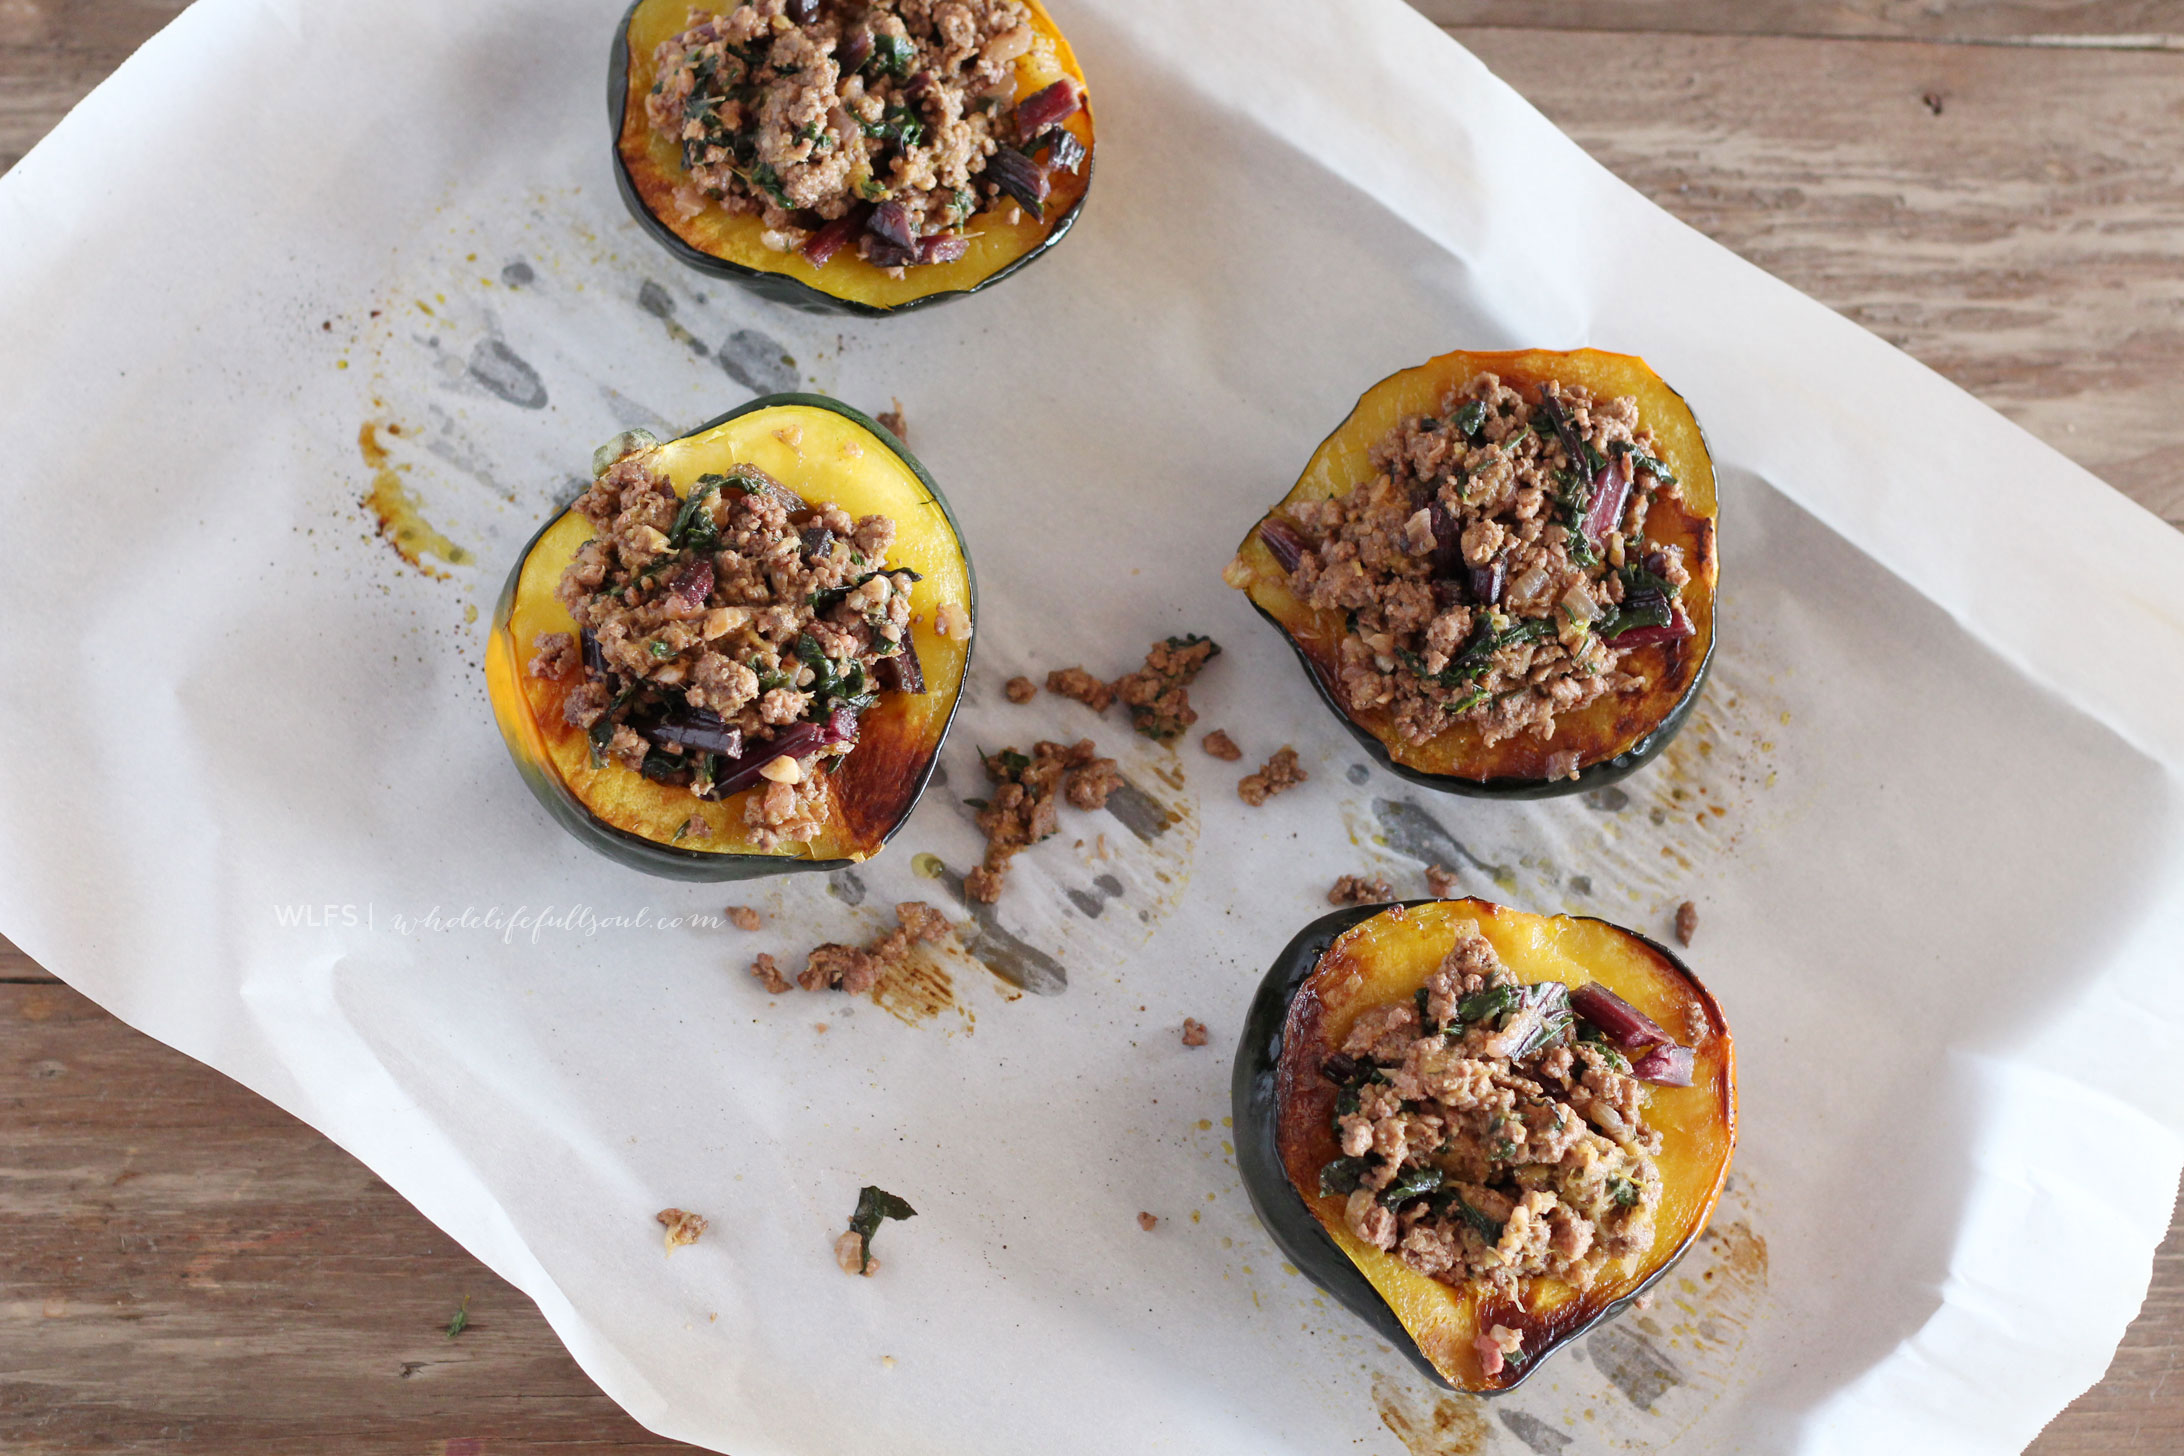 Lamb & Beet Greens Stuffed Acorn Squash